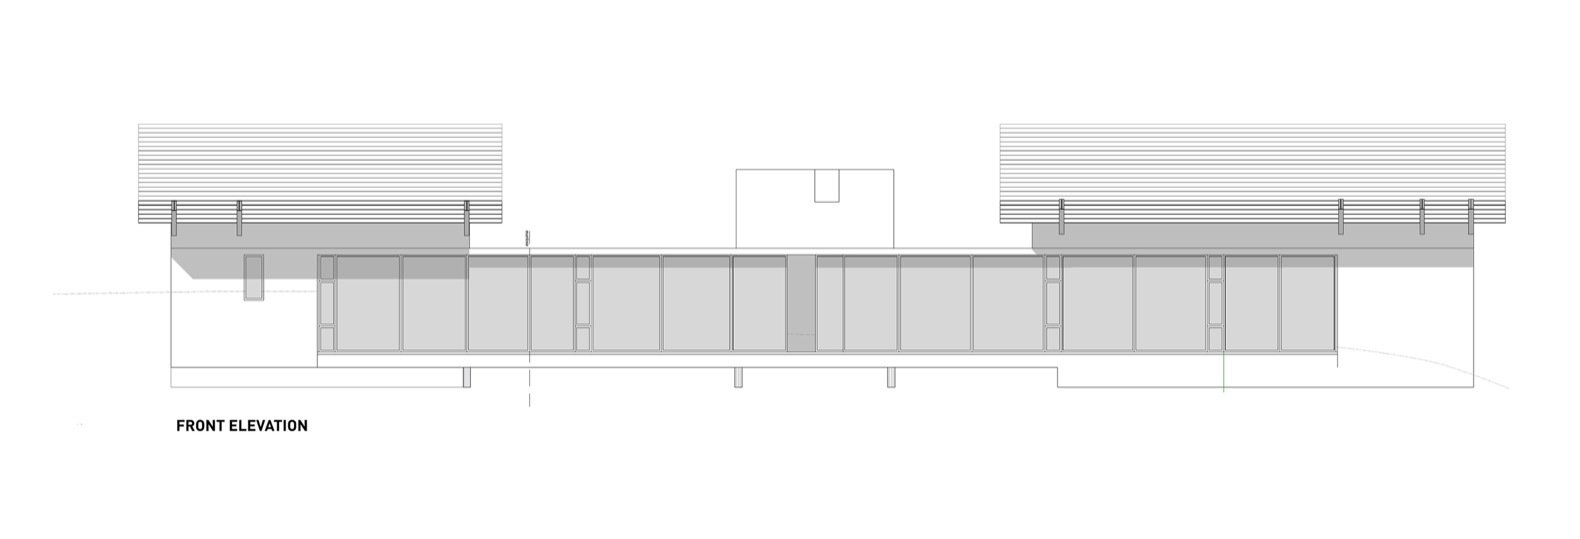 La Cabañita front elevation.  Photo 14 of 15 in A Small Guatemalan Hut Gains a Thoughtful Glazed Expansion